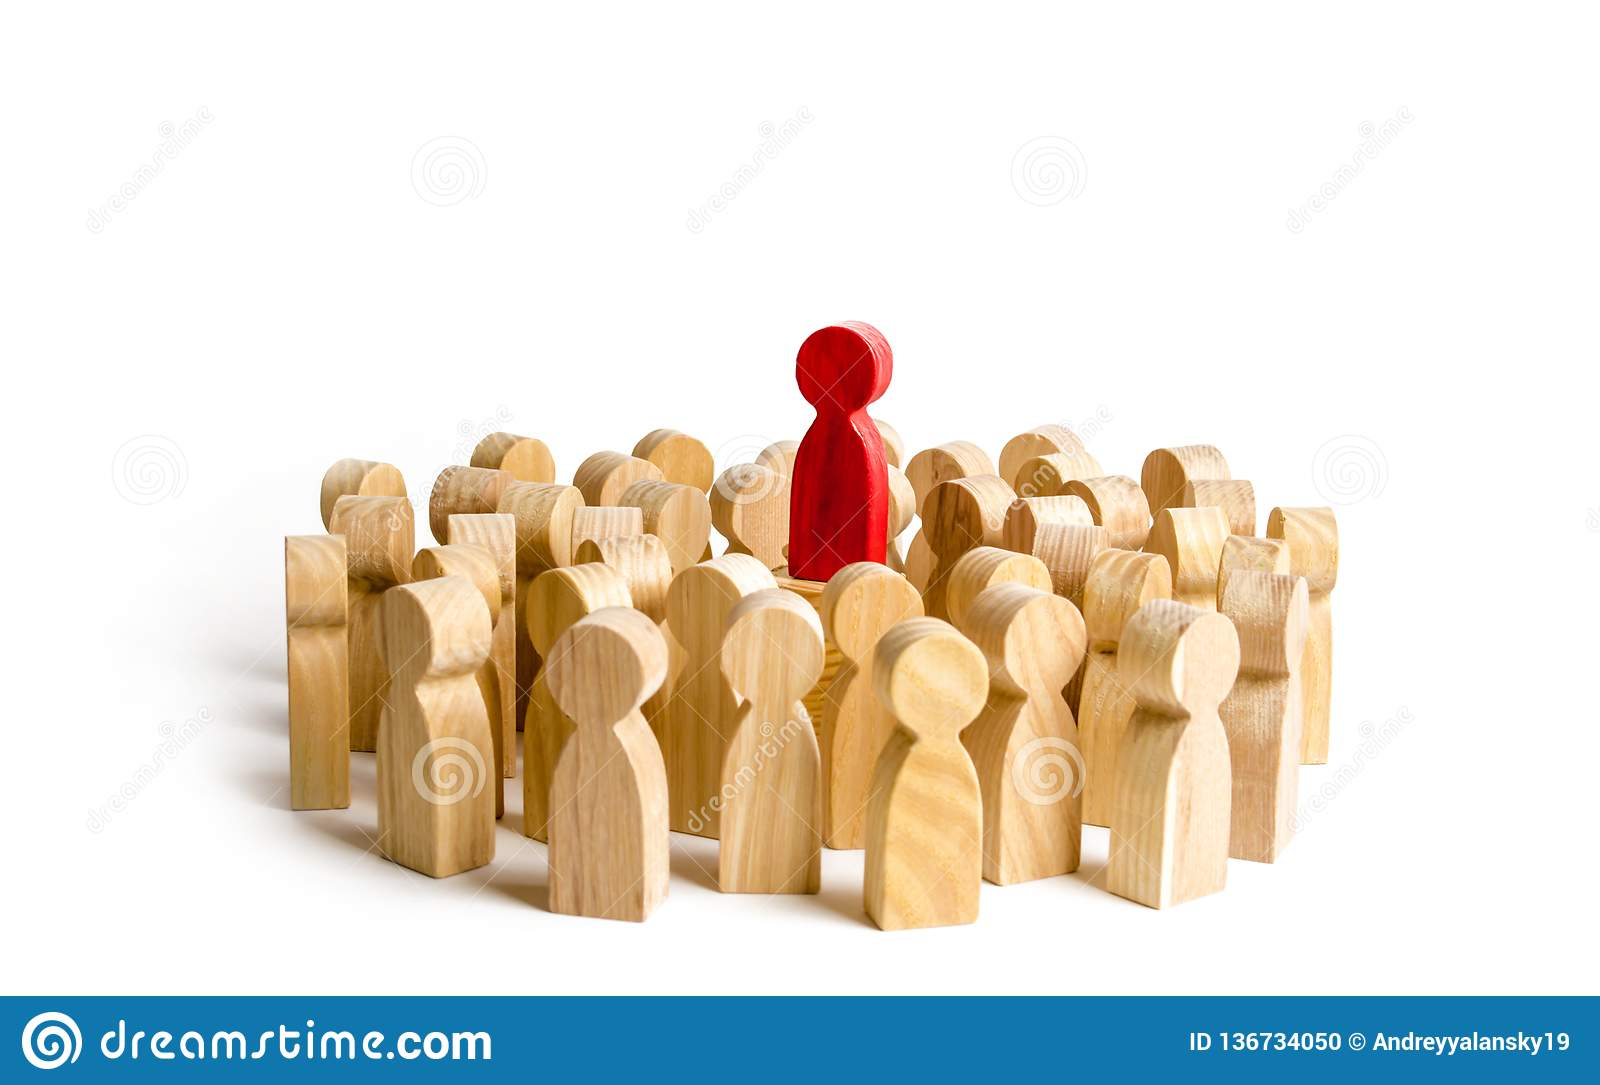 Red figure leader stands at the head of the crowd. Business concept of leader and leadership